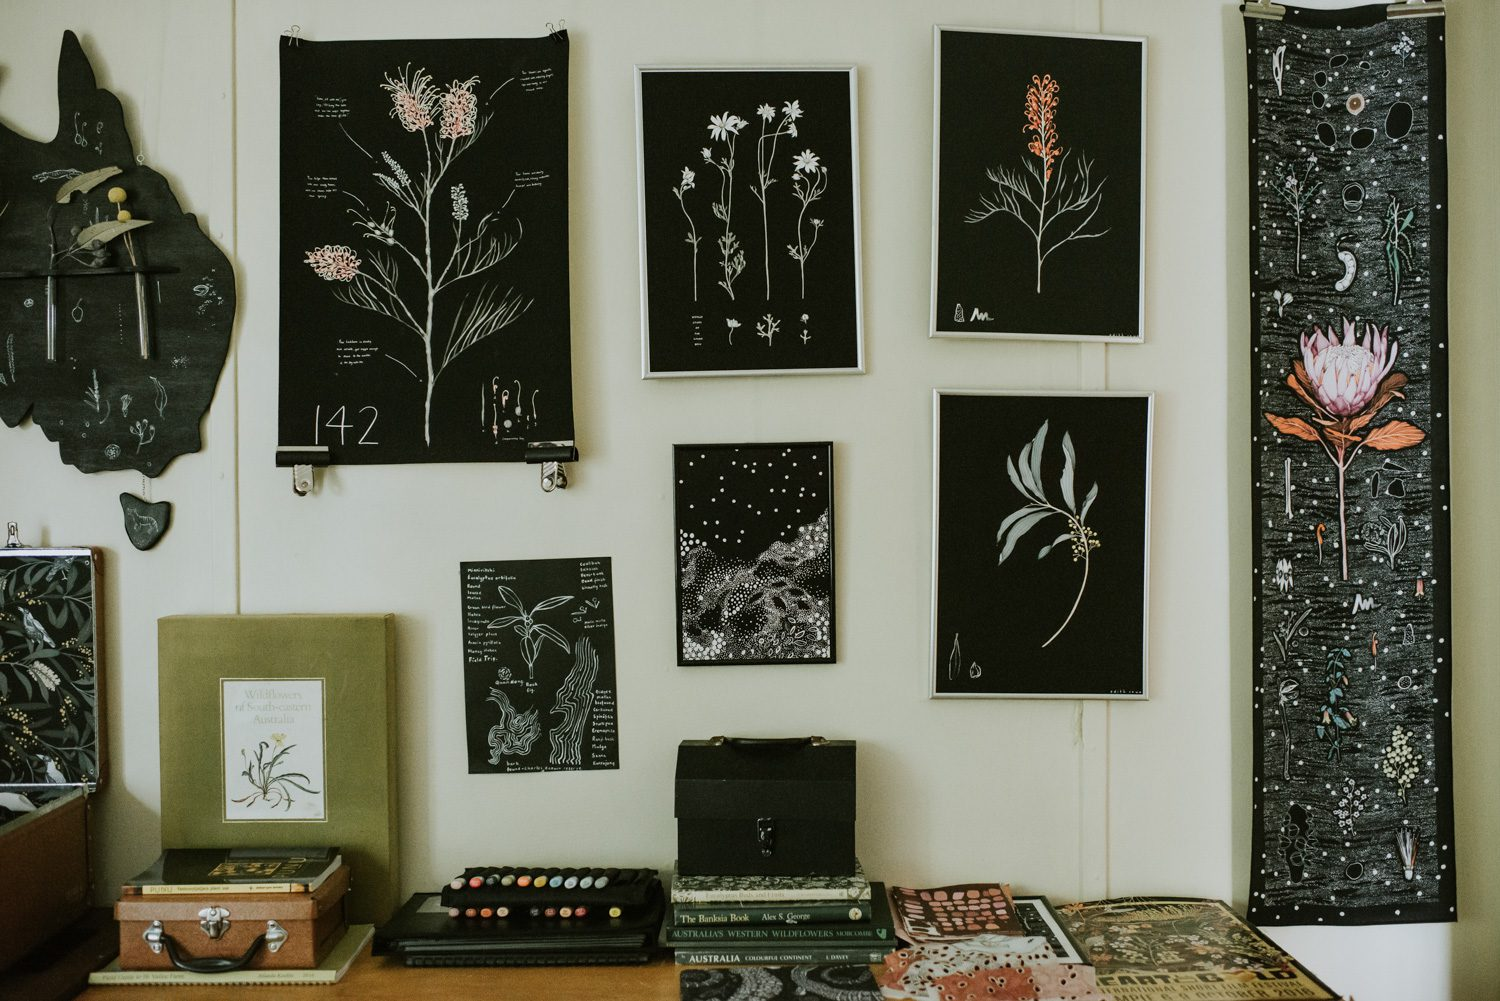 Illustrator Edith Rewa in her Blackheath studio